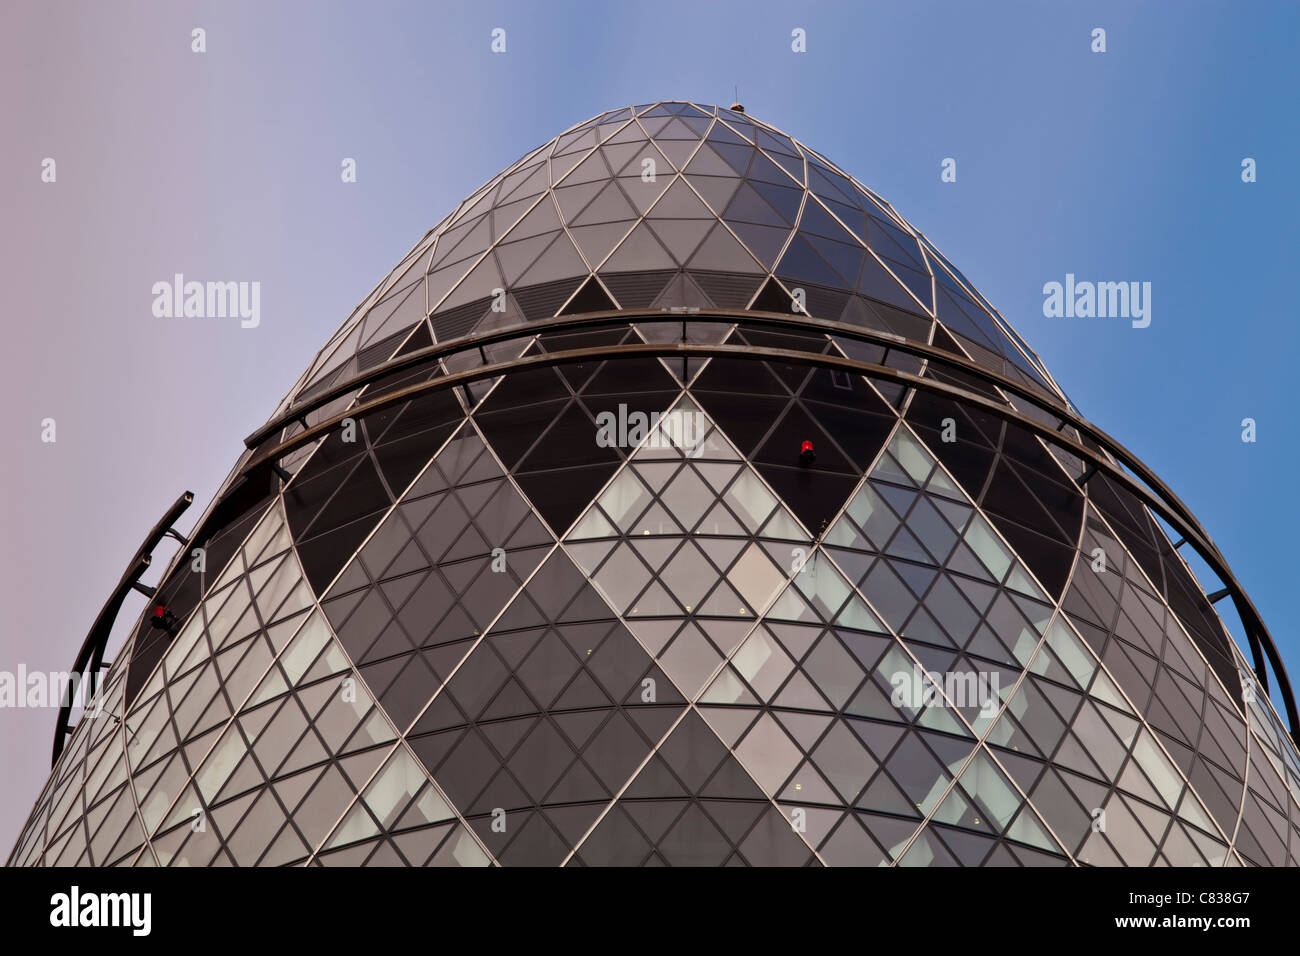 The Swiss RE Building, (The Gherkin) St Mary Axe, London, England - Stock Image